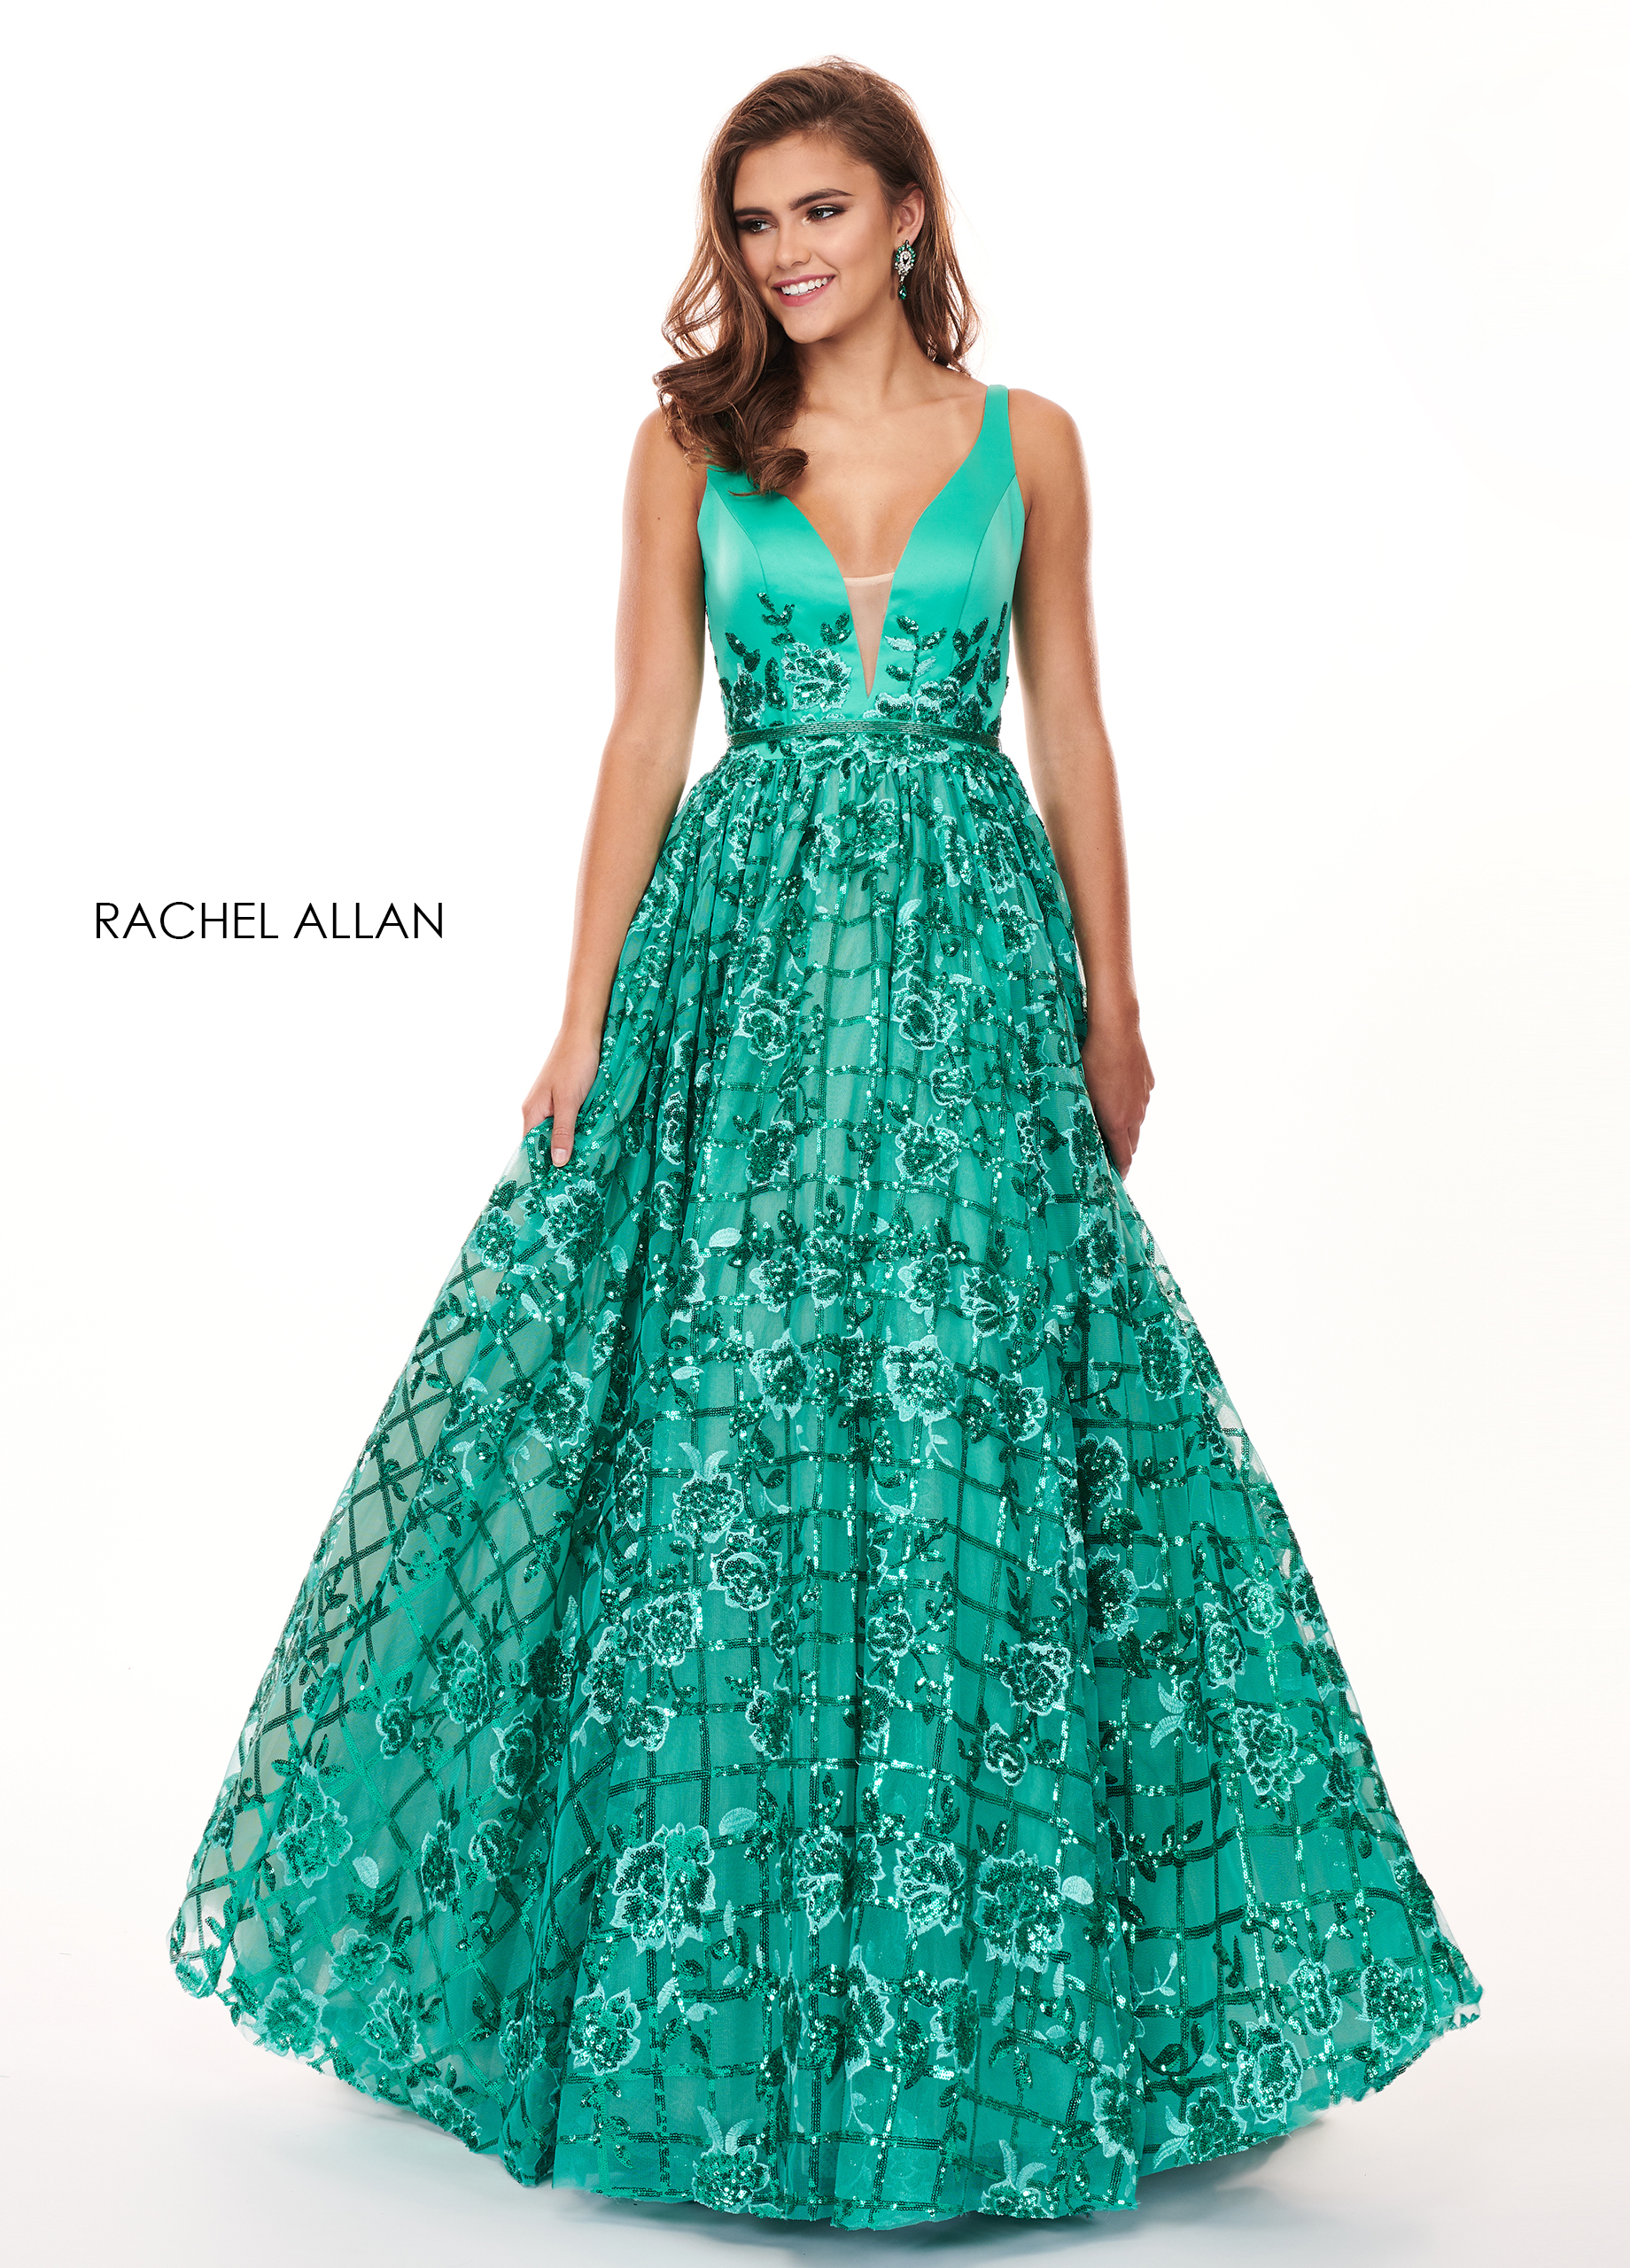 V-Neck Ball Gowns Prom Dresses in Green Color